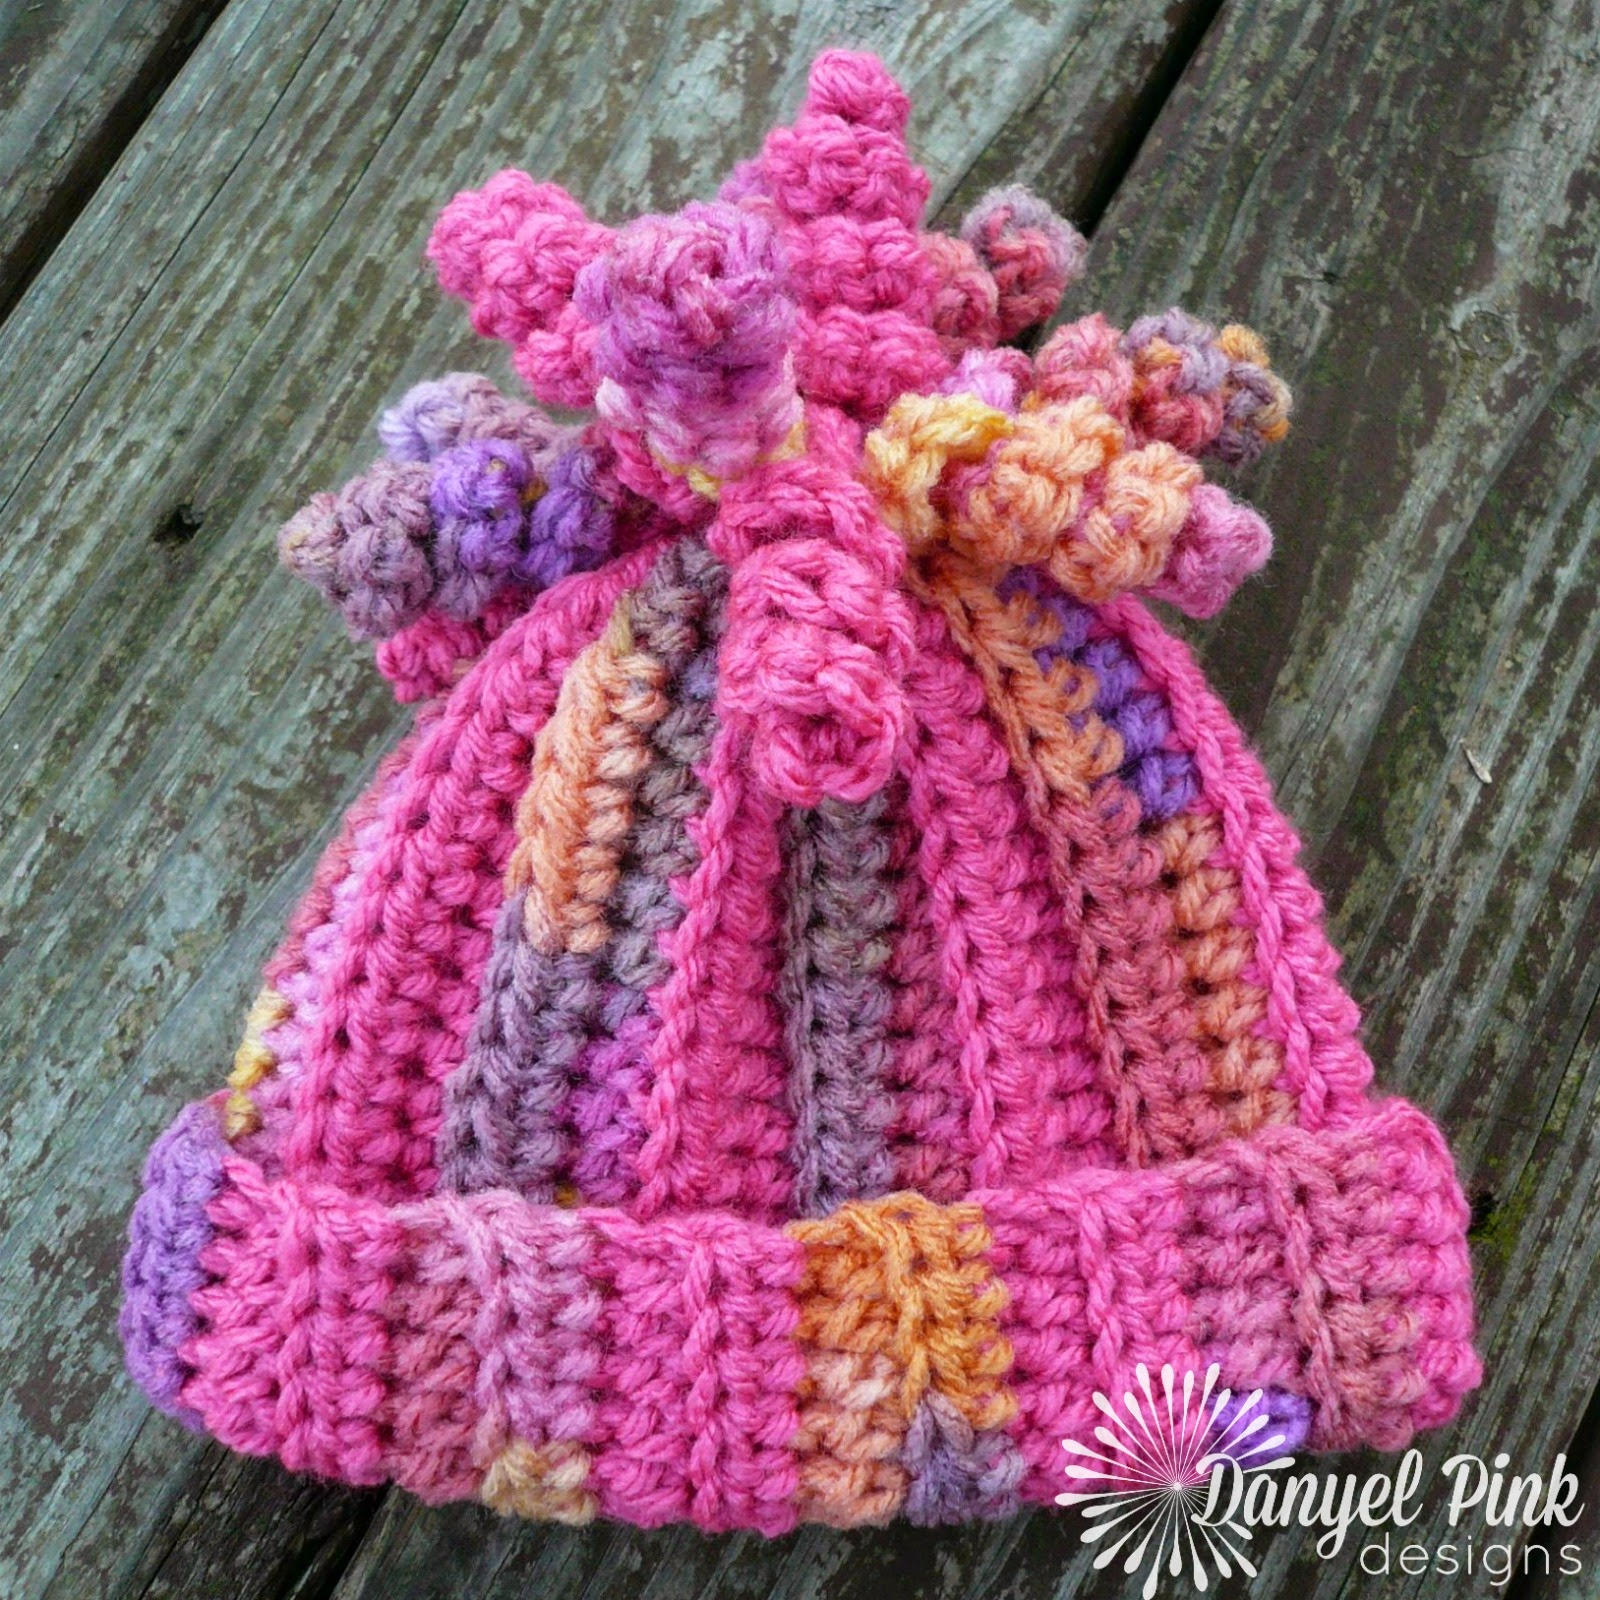 Danyel Pink Designs Crochet Pattern Delaney Hat